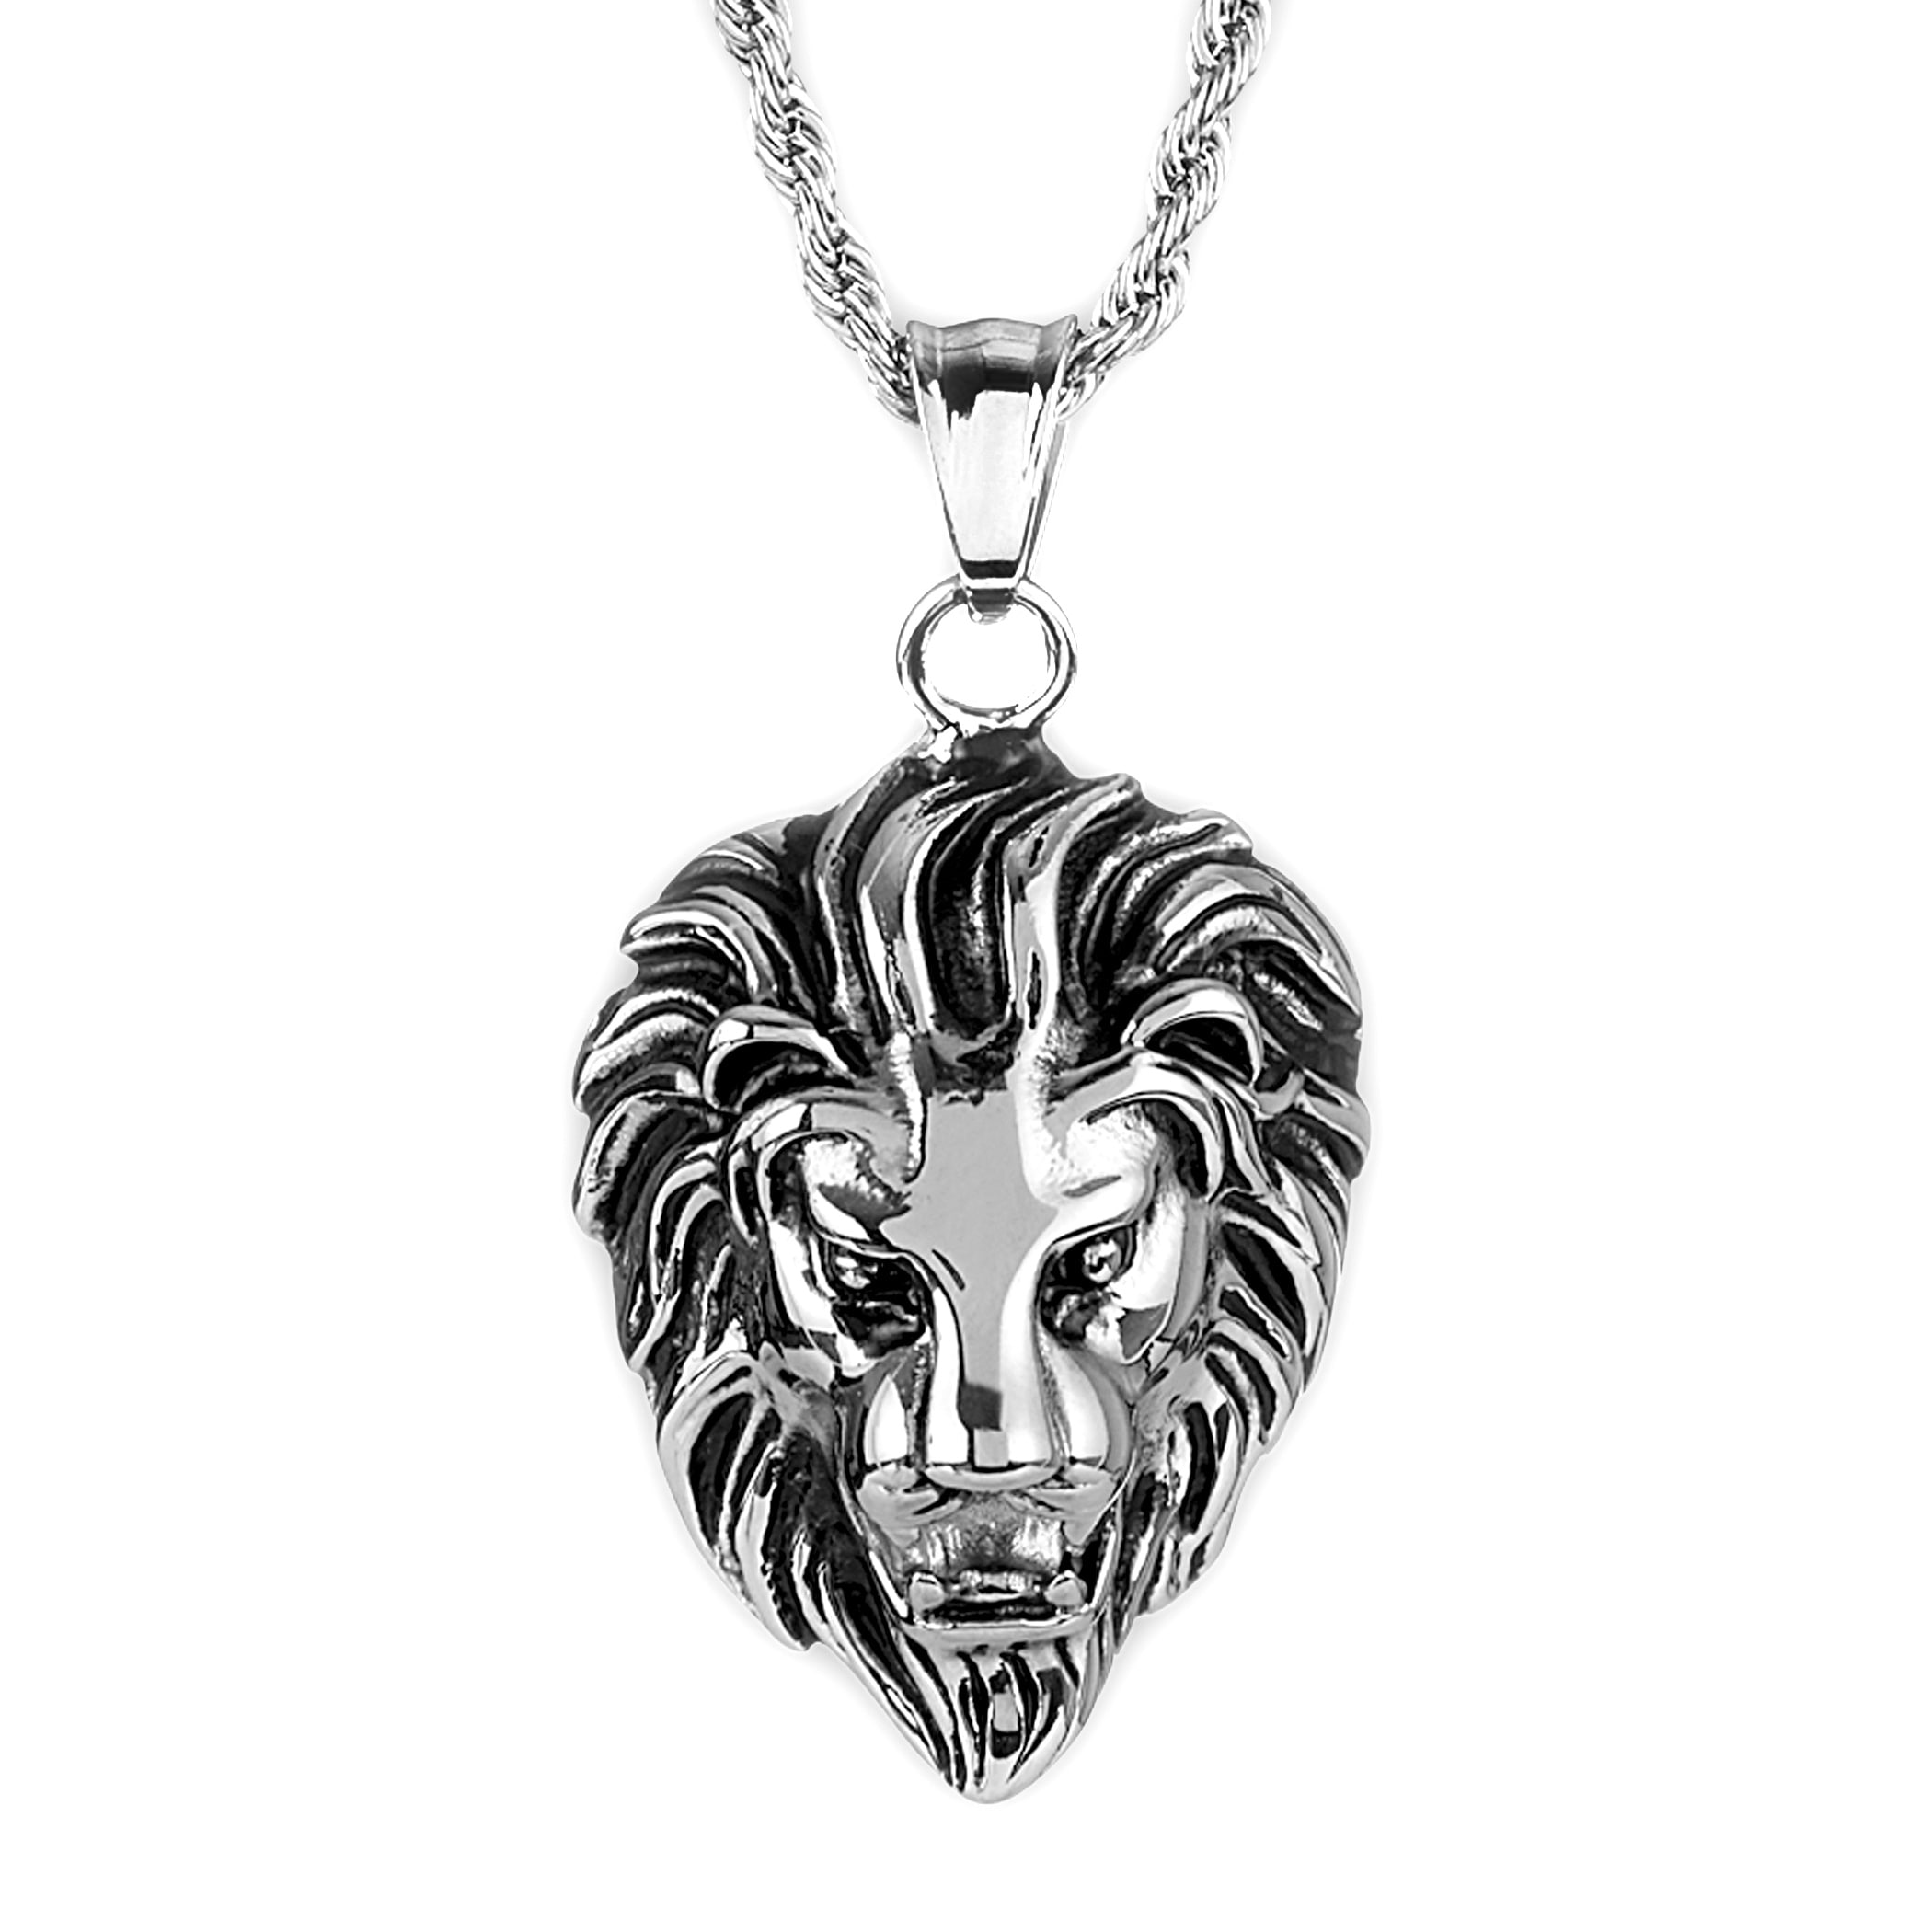 jewelry s with dp men necklace steel jewellery crystal charm uk amazon women silver pendant stainless chain beads co for lion